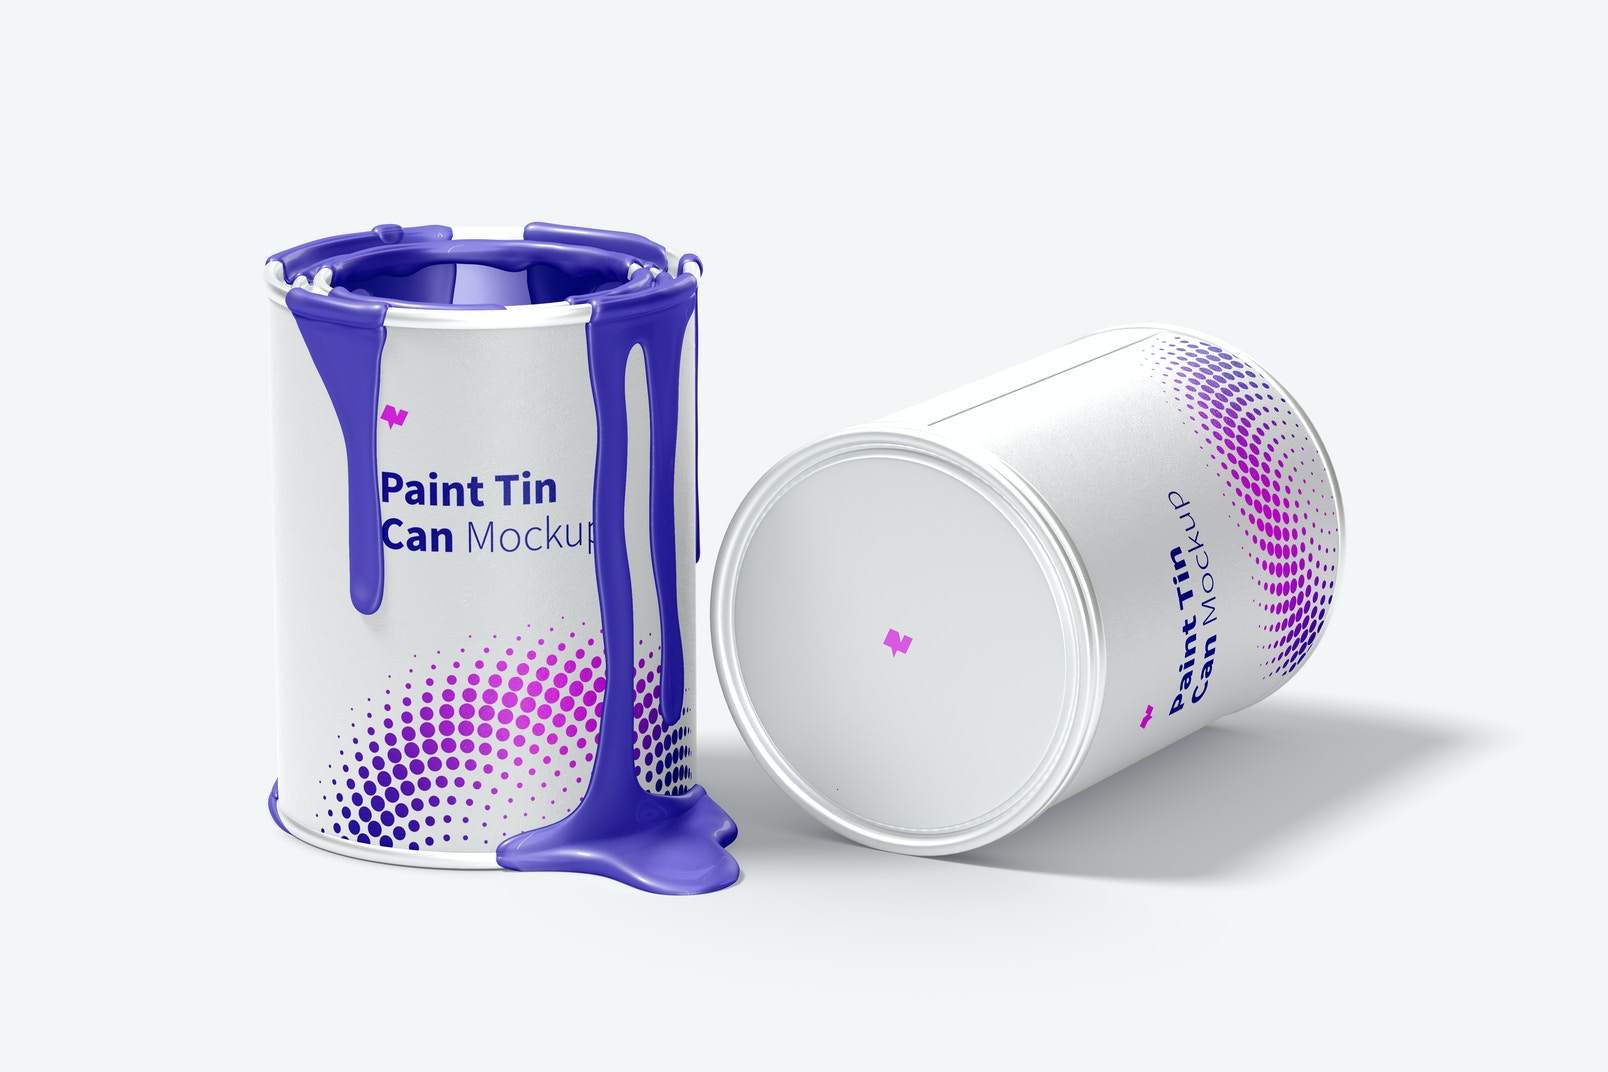 Paint Tin Cans Mockup, Opened